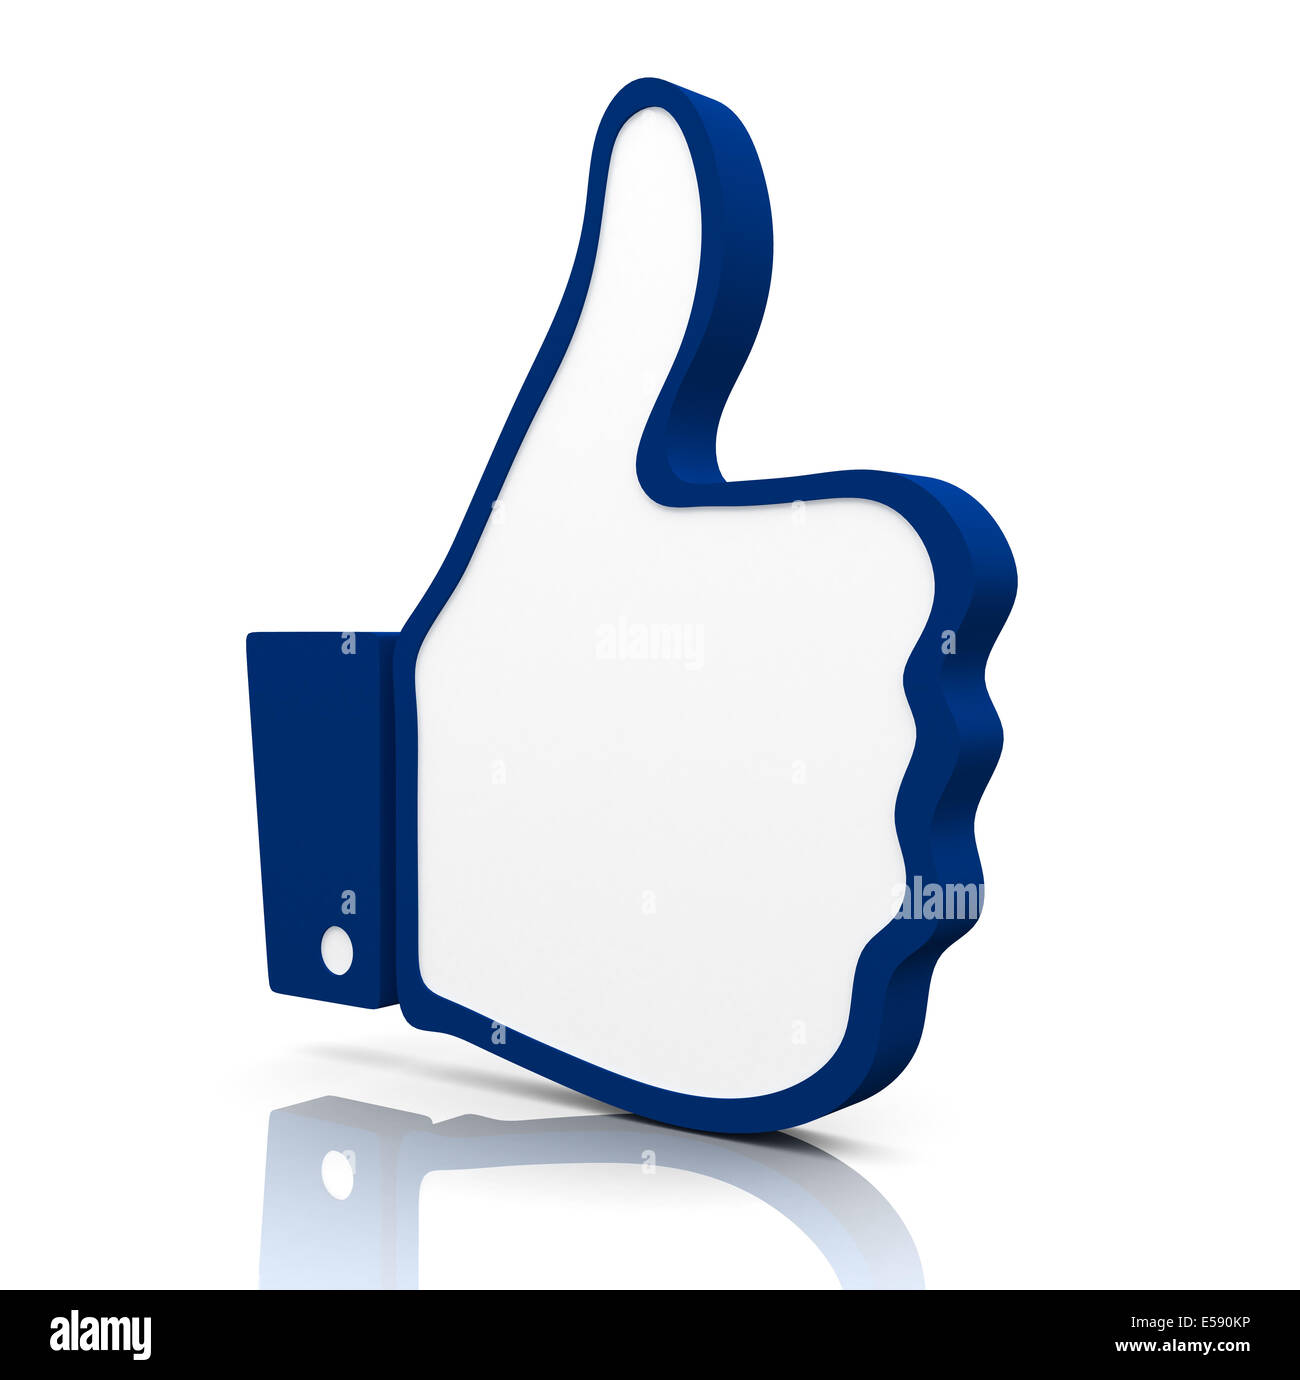 3D Rendered icon of a hand with the thumb up. - Stock Image